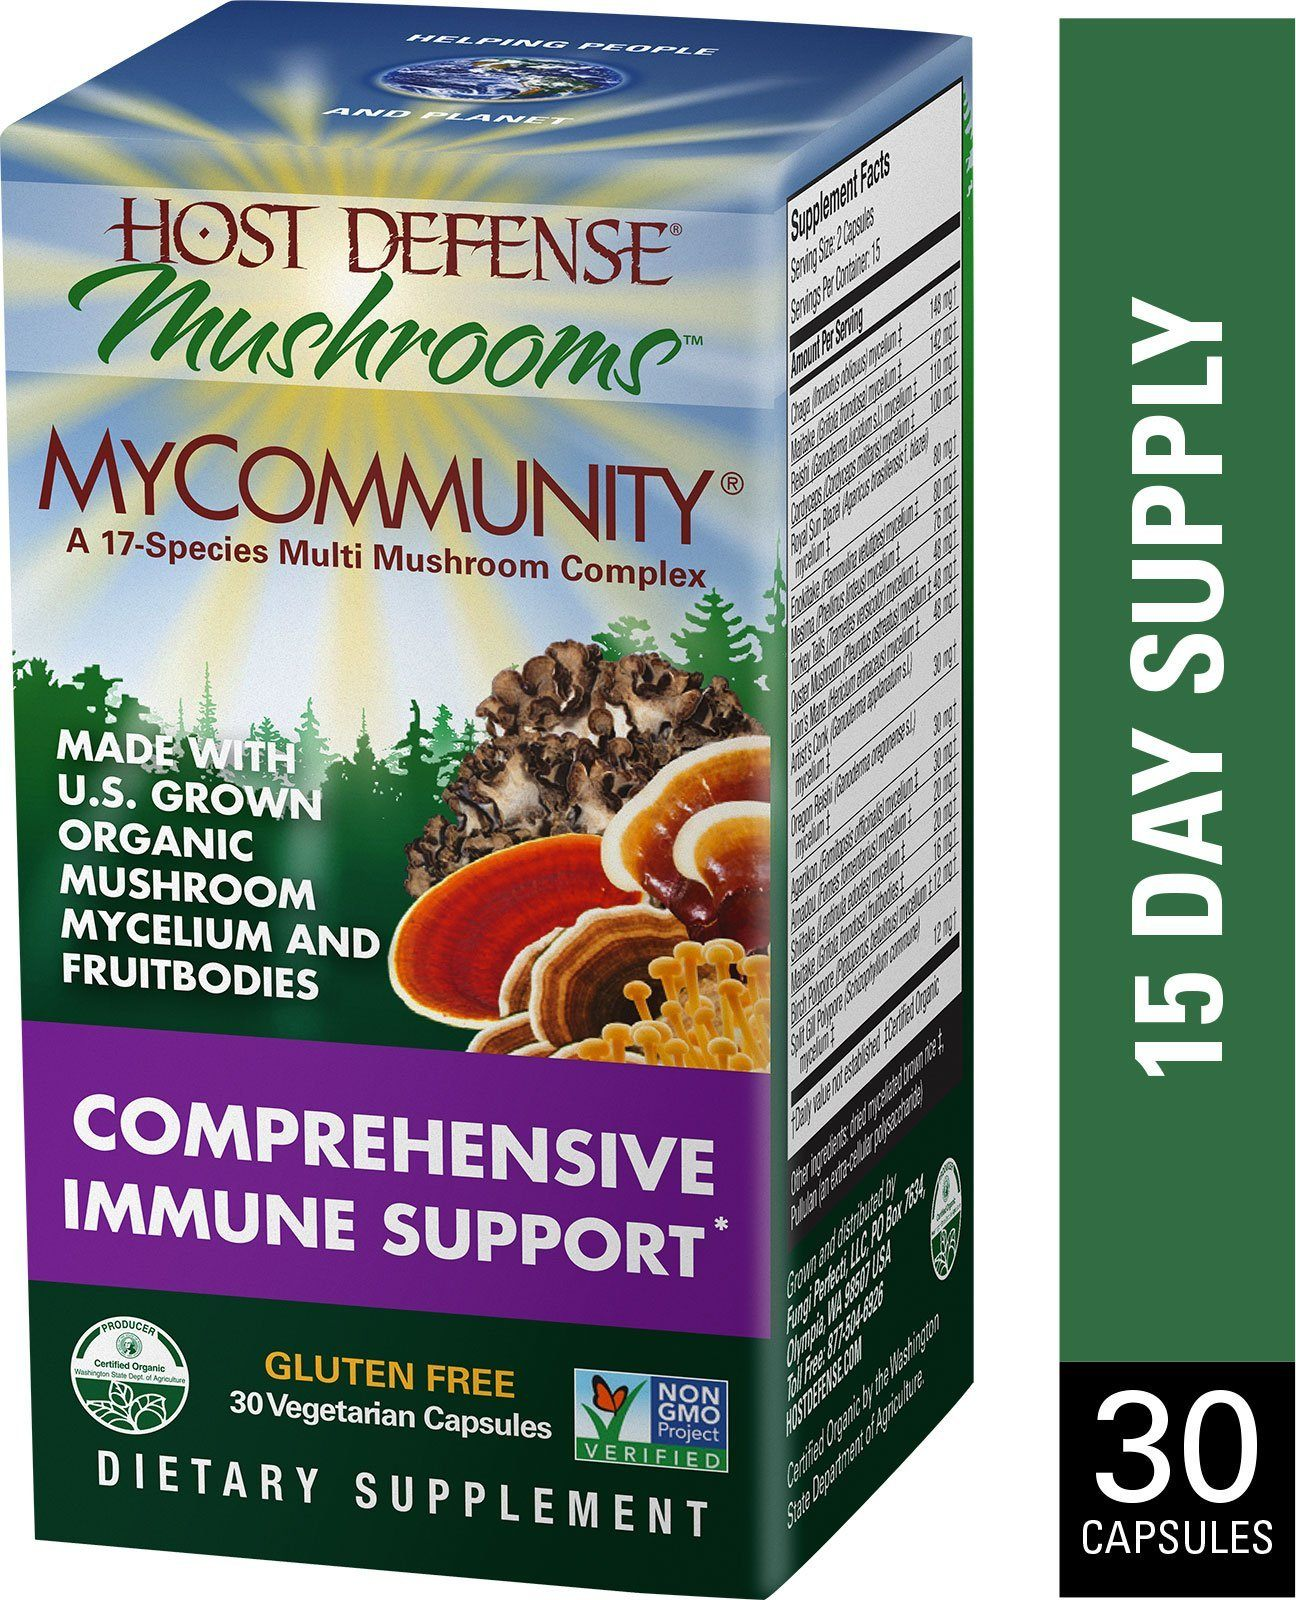 Supplements & Vitamins - Host Defense - Mycommunity, 30 Caps